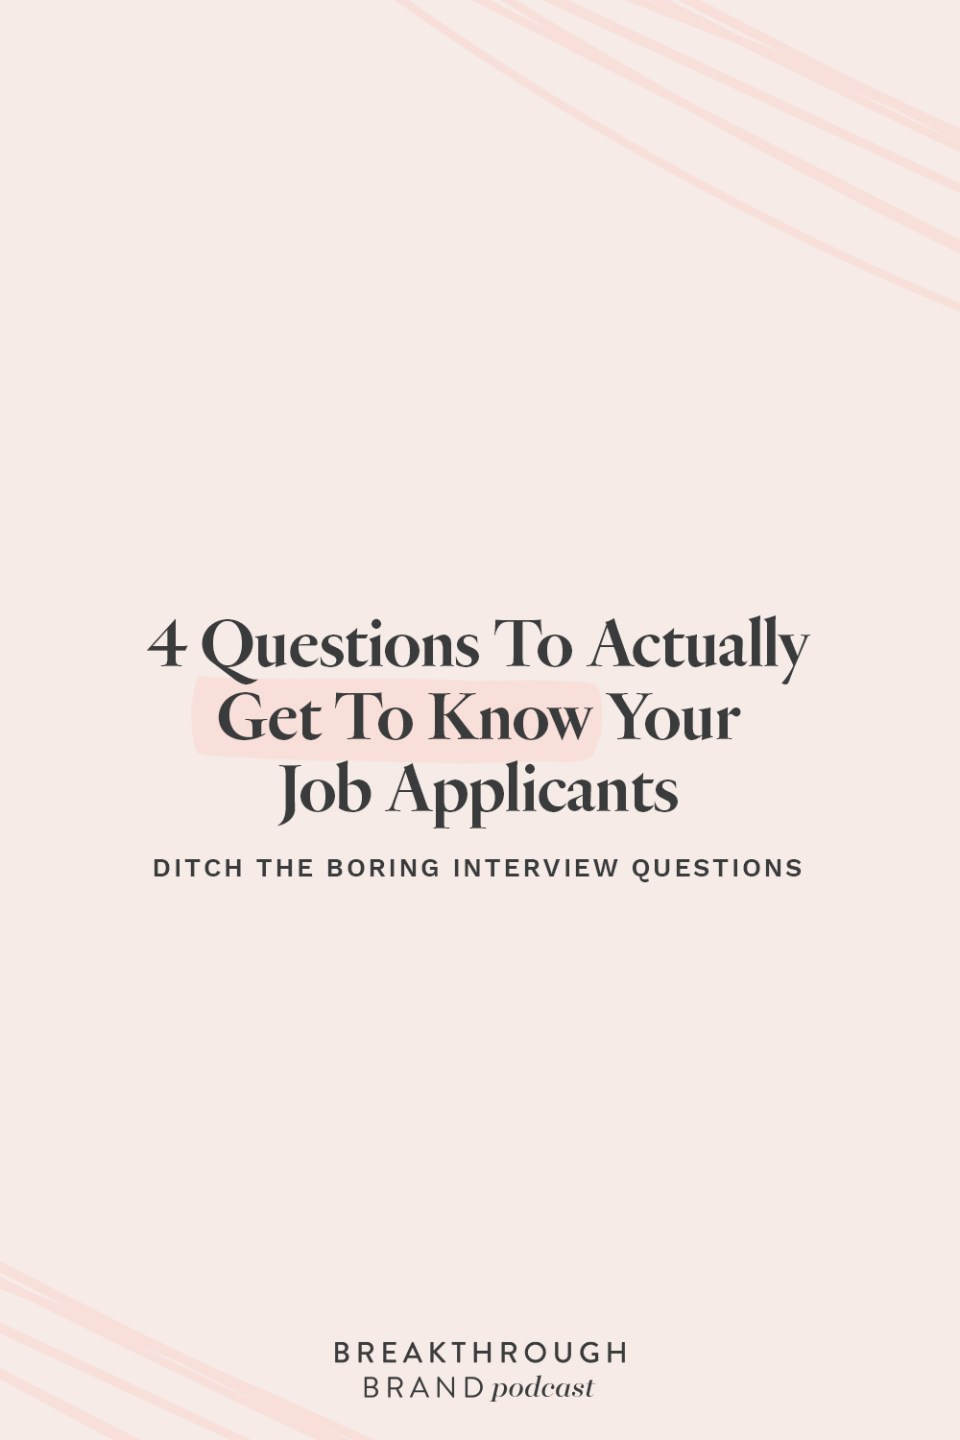 Use these four questions to actually get to know the people applying to work with you. They aren't your basic interview questions